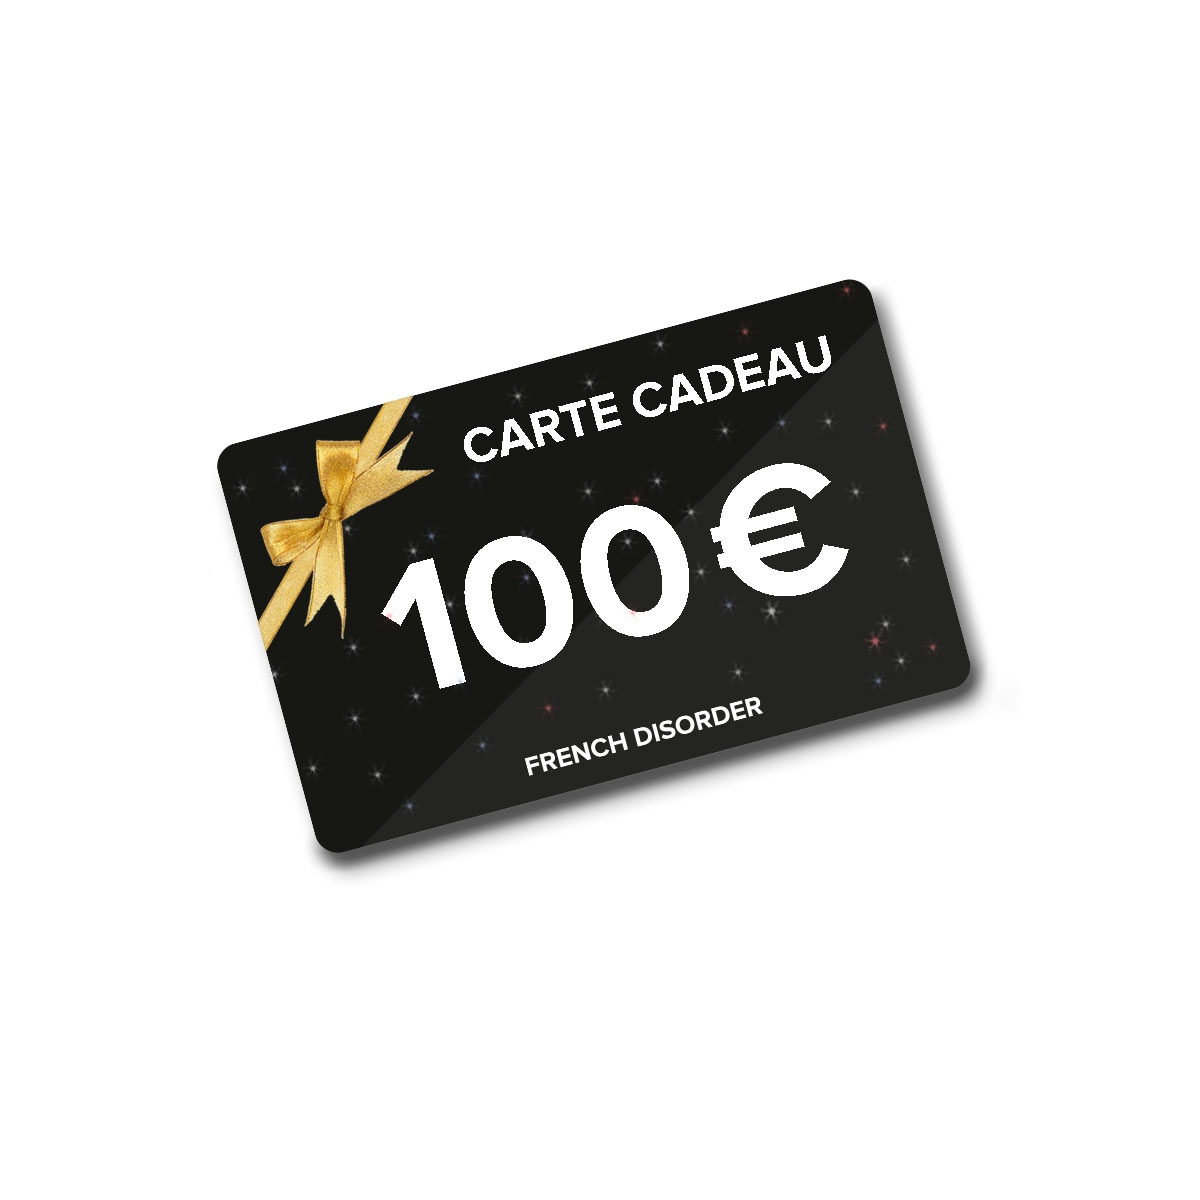 e-Carte cadeau 100€ French Disorder